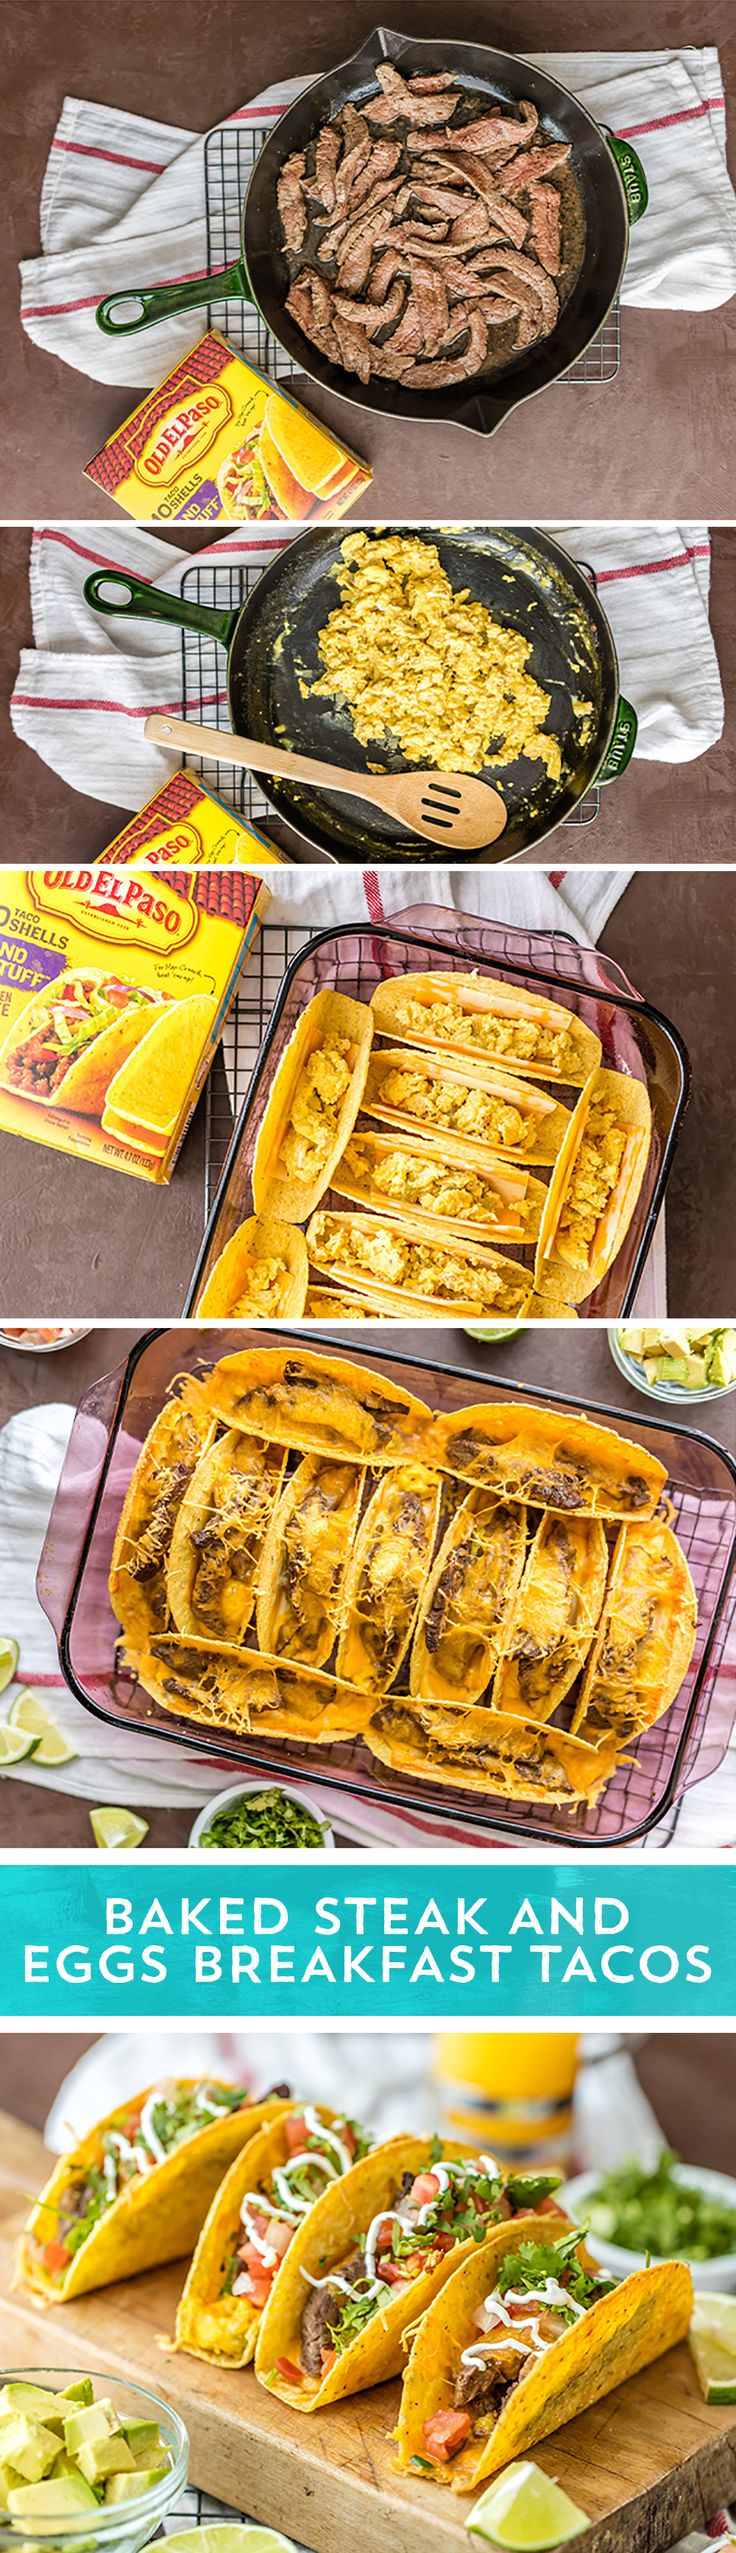 Need a fun and tasty breakfast to feed a crowd? Try these Baked Steak and Egg Tacos from @beckygallhardin! They are everything you love about a classic steak and egg breakfast, baked into the Old El Paso Stand N Stuff Tacos™ you crave! Ready in just 30 minutes - these quick and easy breakfast tacos are perfect for any morning!